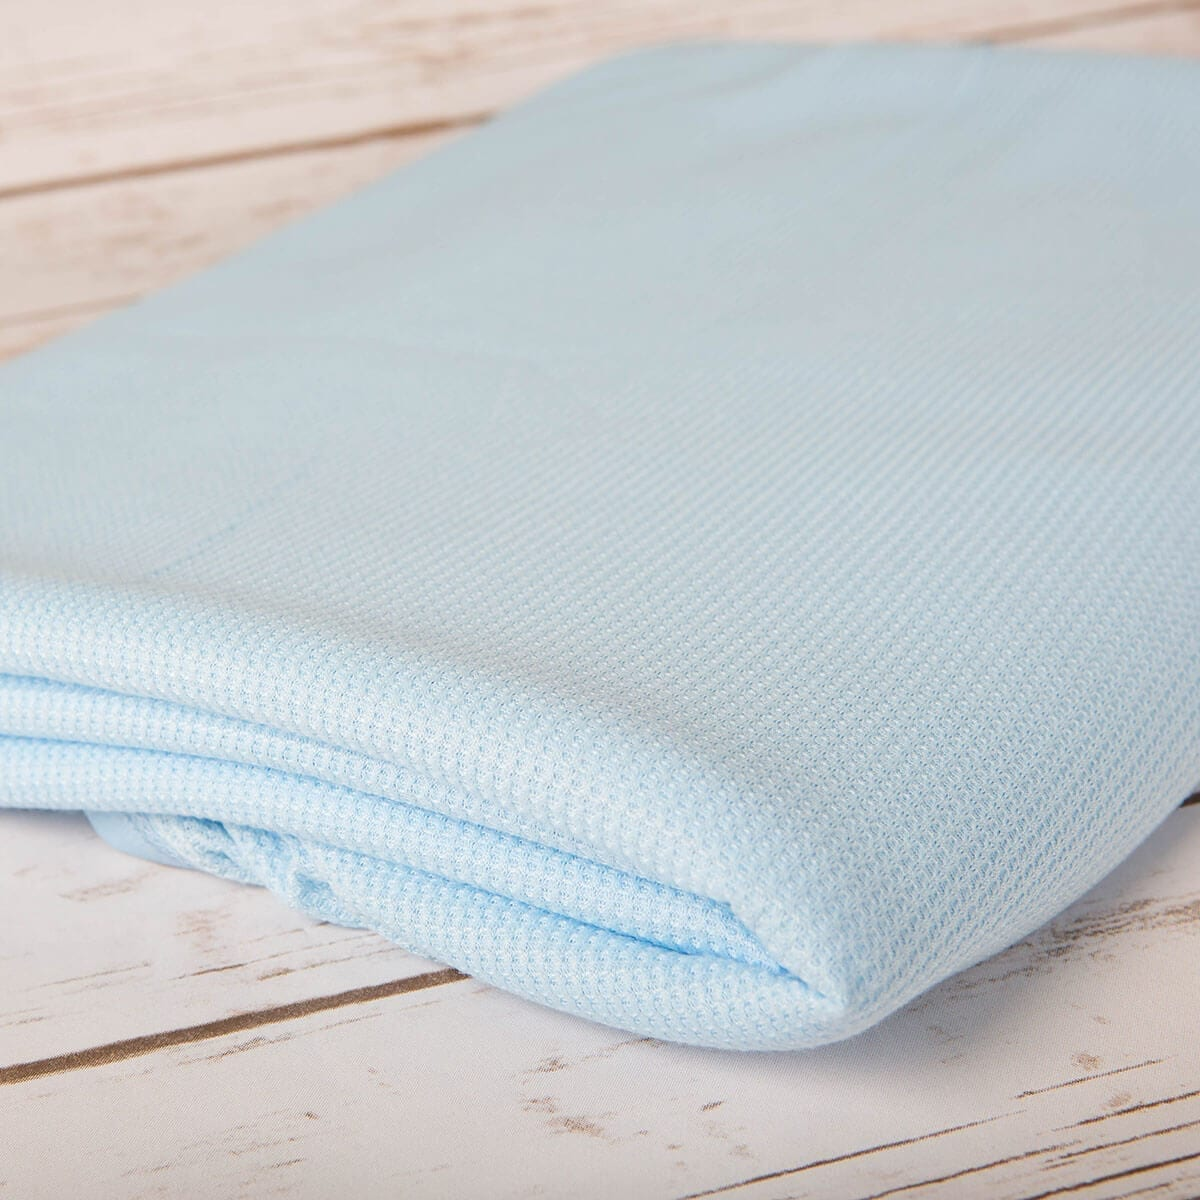 Lightweight Thermal Blankets Interweave Healthcare